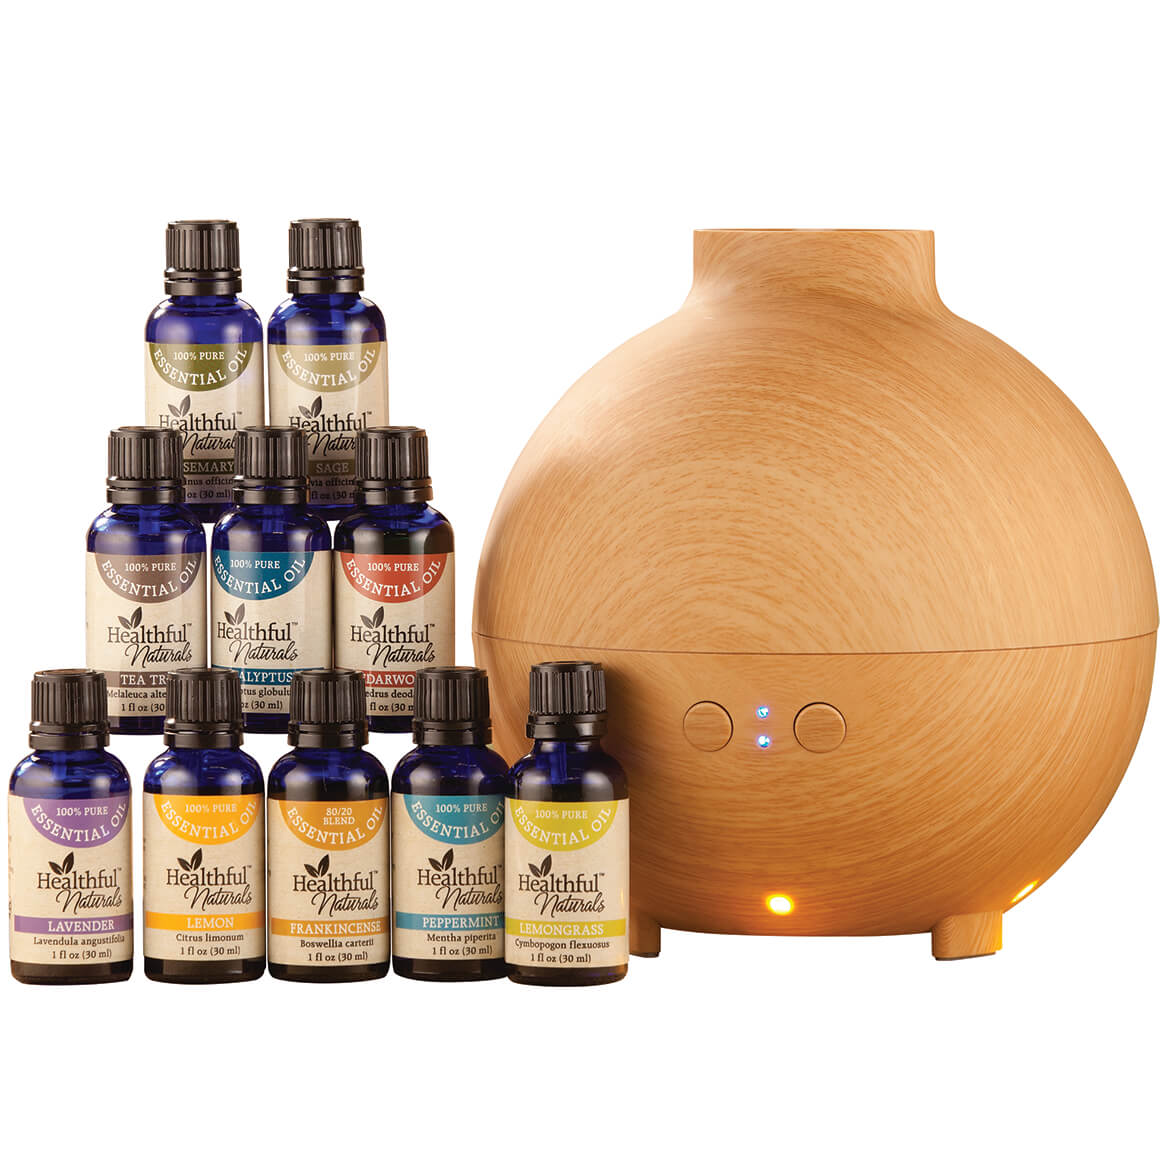 Healthful™ Naturals Premium Kit and 600 ml Diffuser-356695